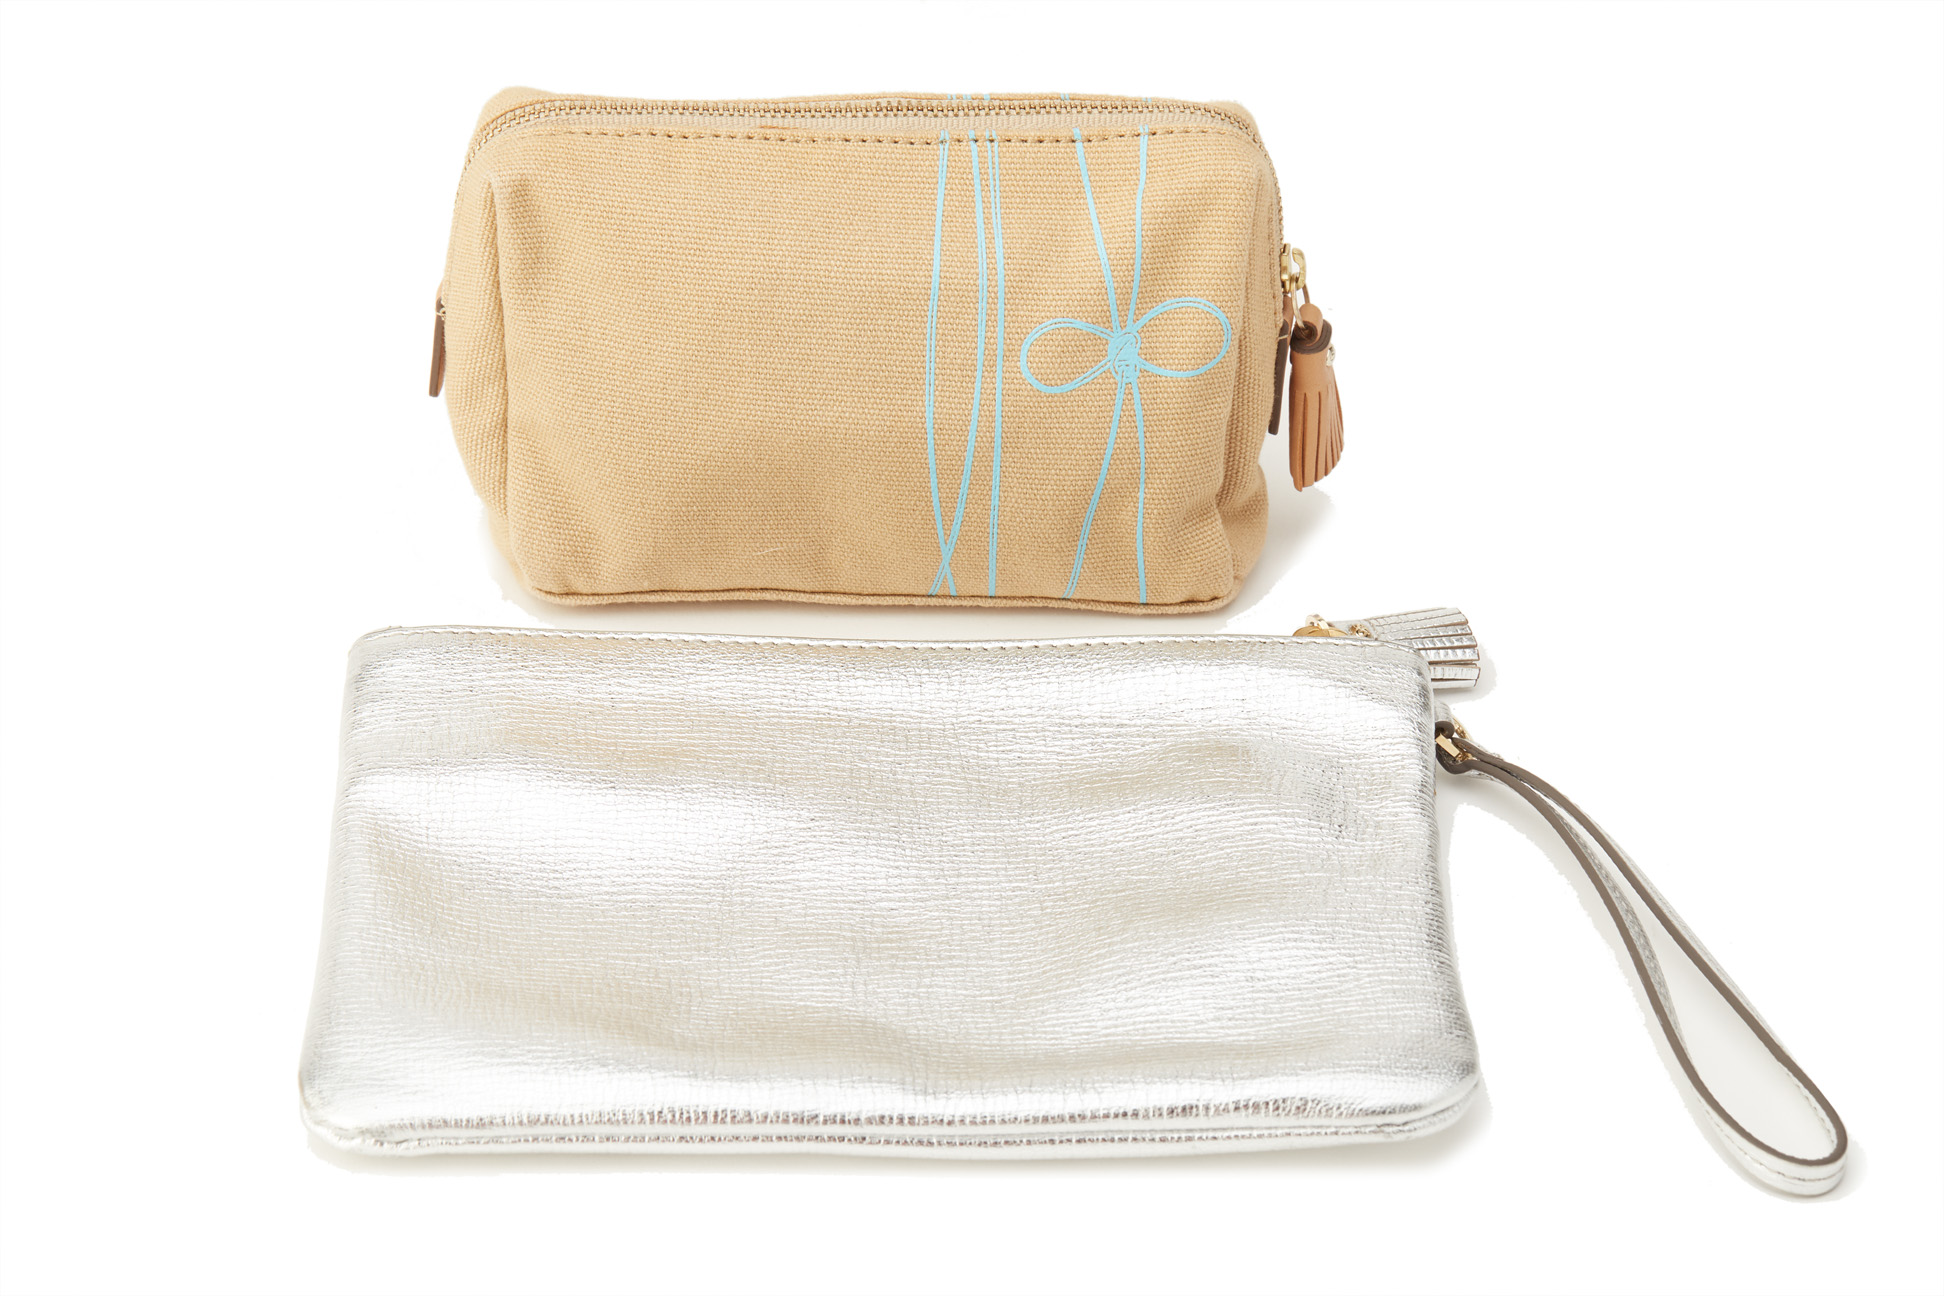 TWO ANYA HINDMARCH POUCHES - Image 2 of 2